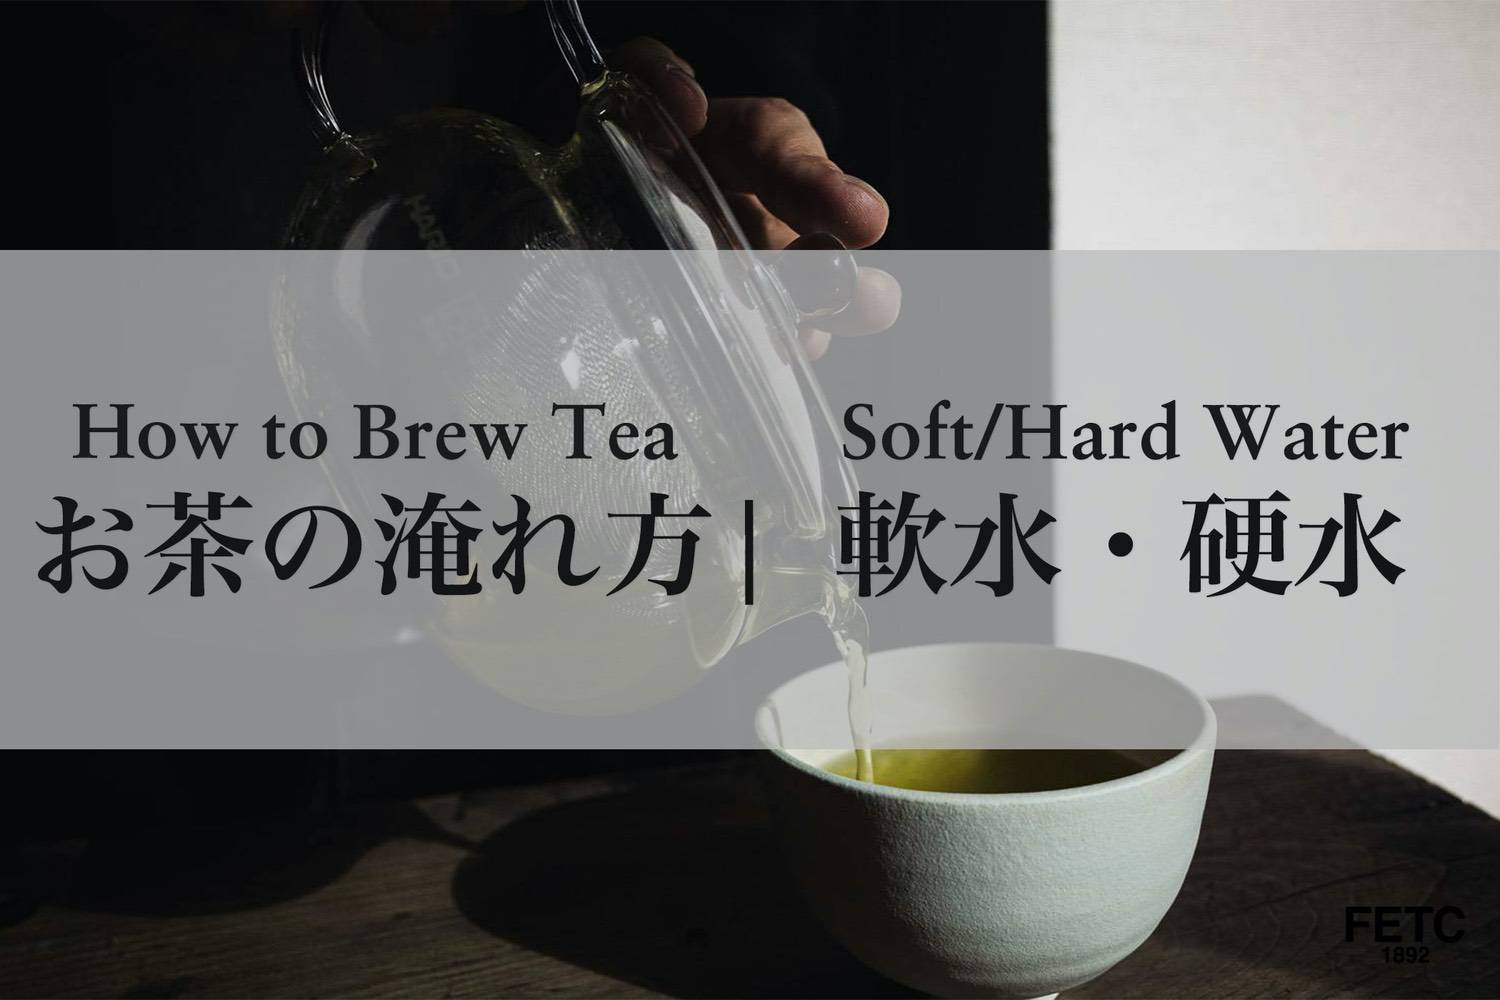 Which is More Suitable for Tea: Soft water or Hard water?